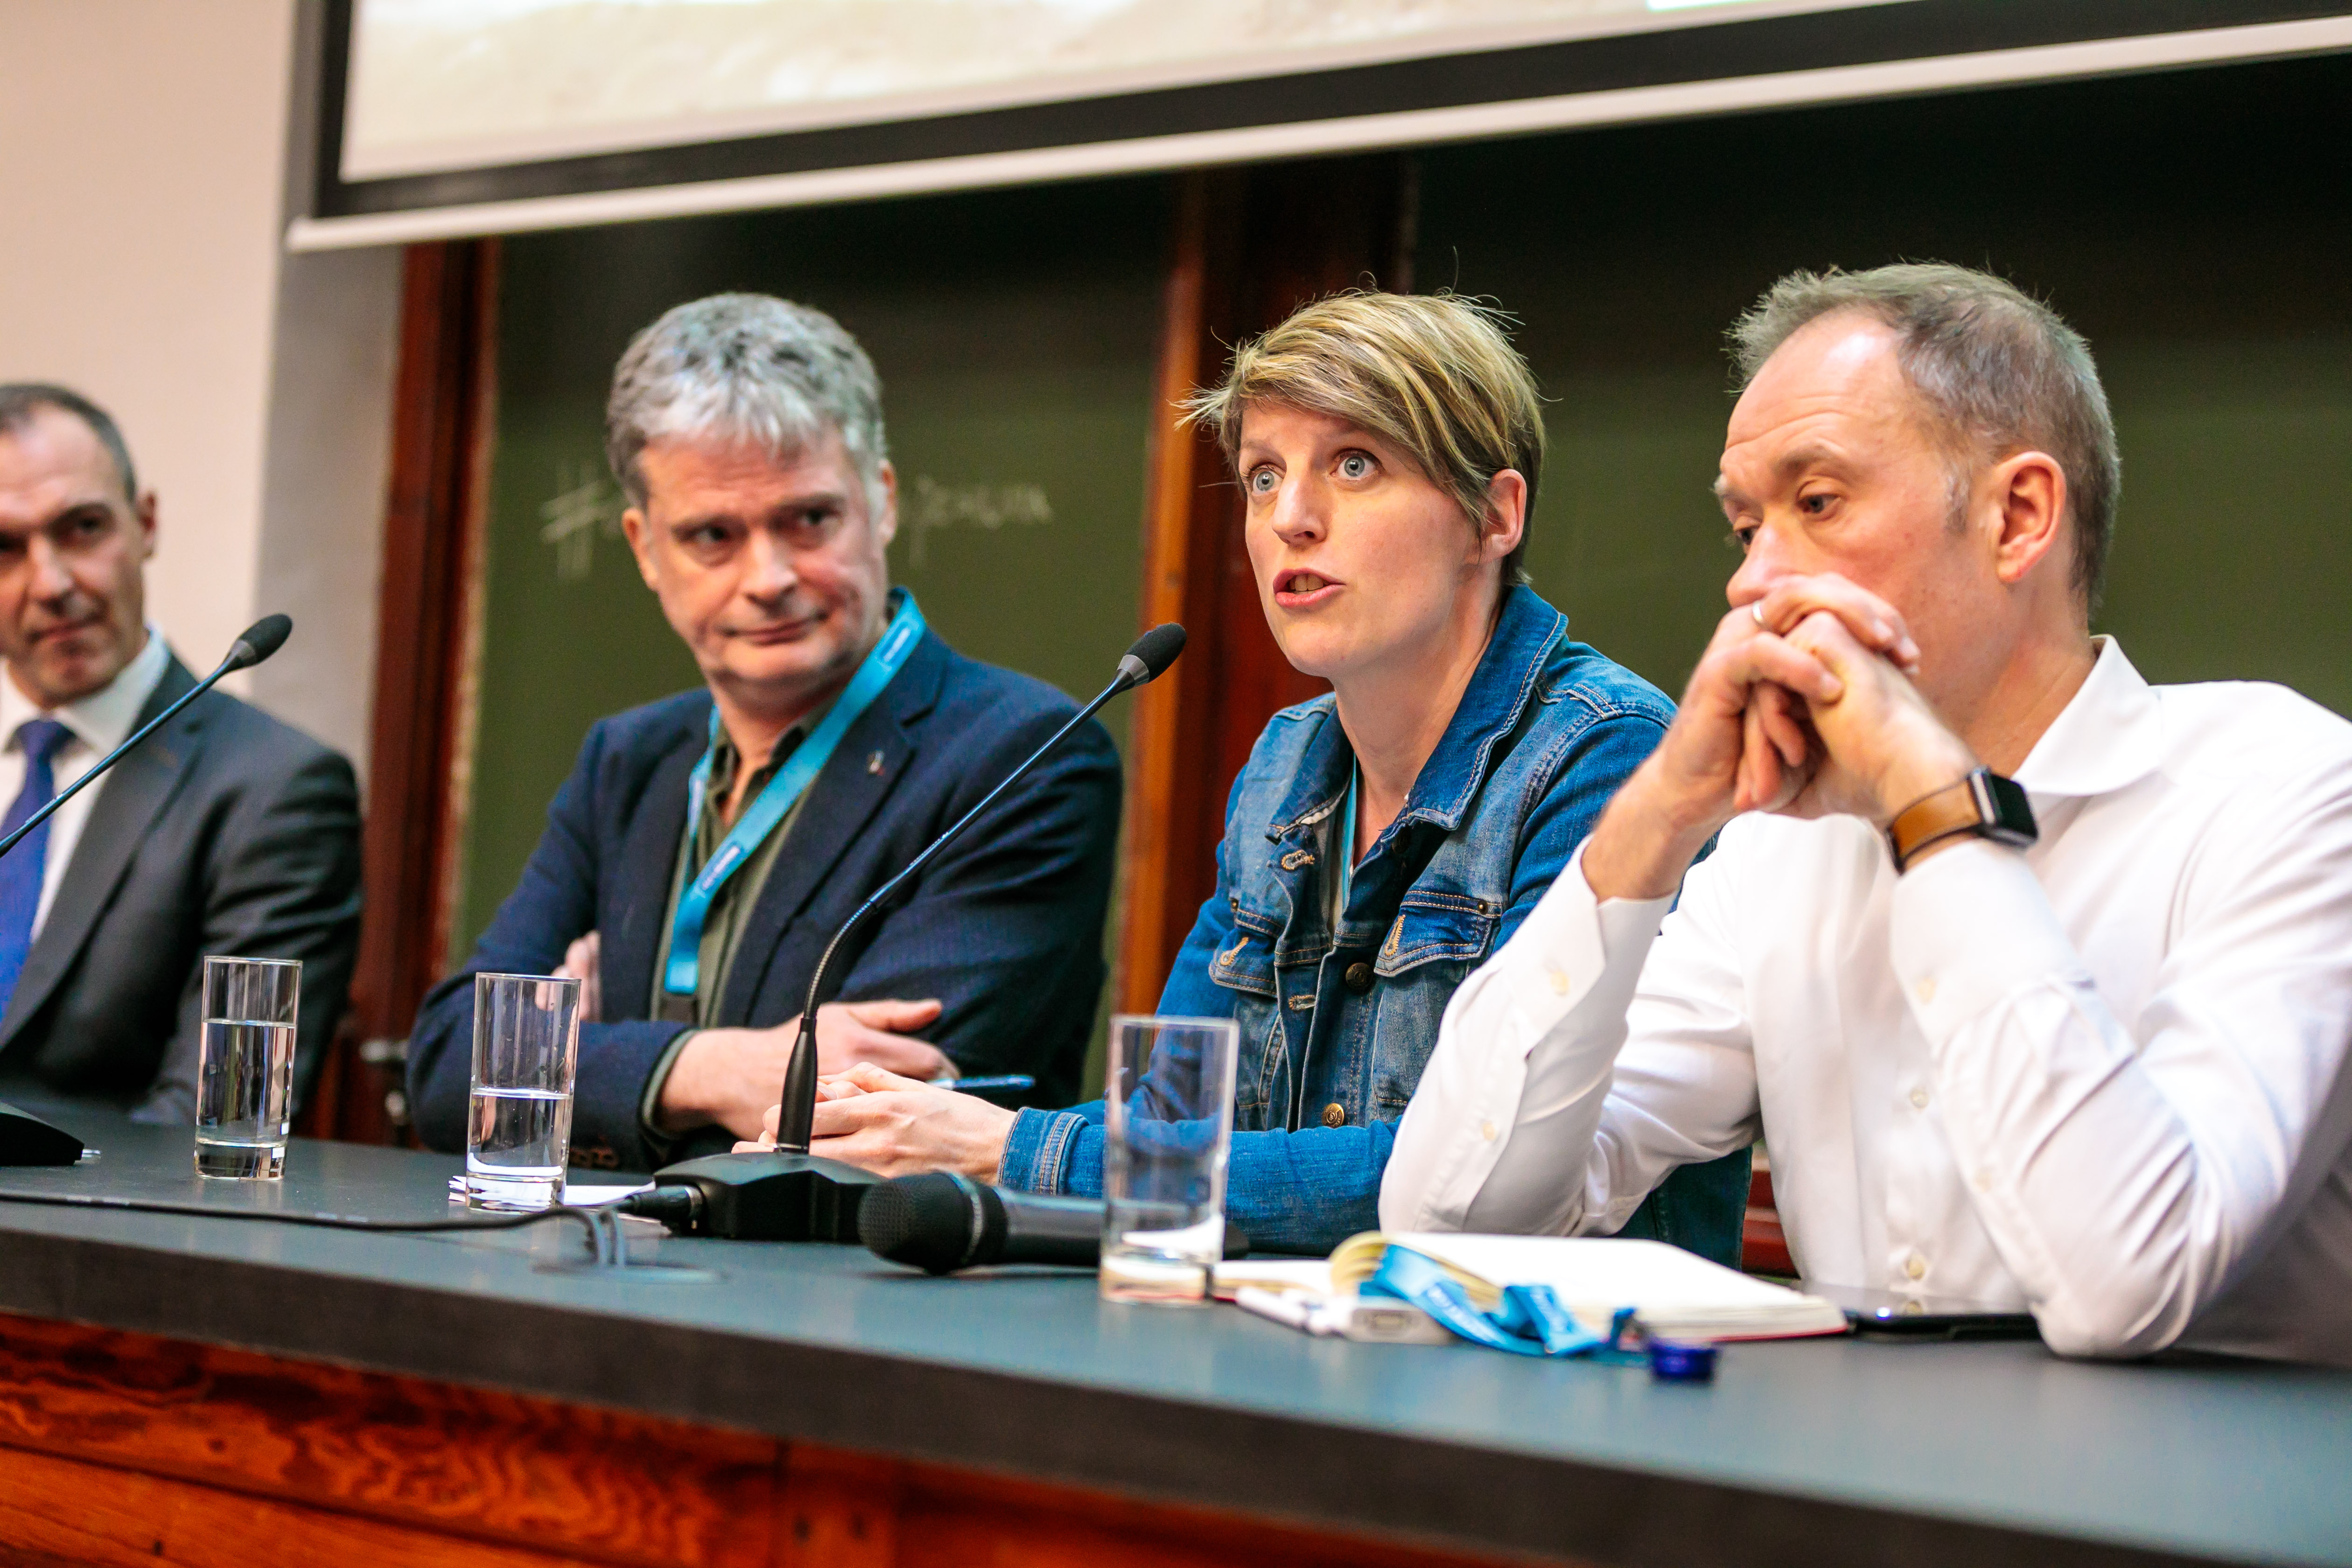 From left to right: Peter Standaert (Ecowerf), Katrien Rycken (Leuven 2030), Serge de Gheldere (FutureProofed) (credits image: Nicolas Herbots)